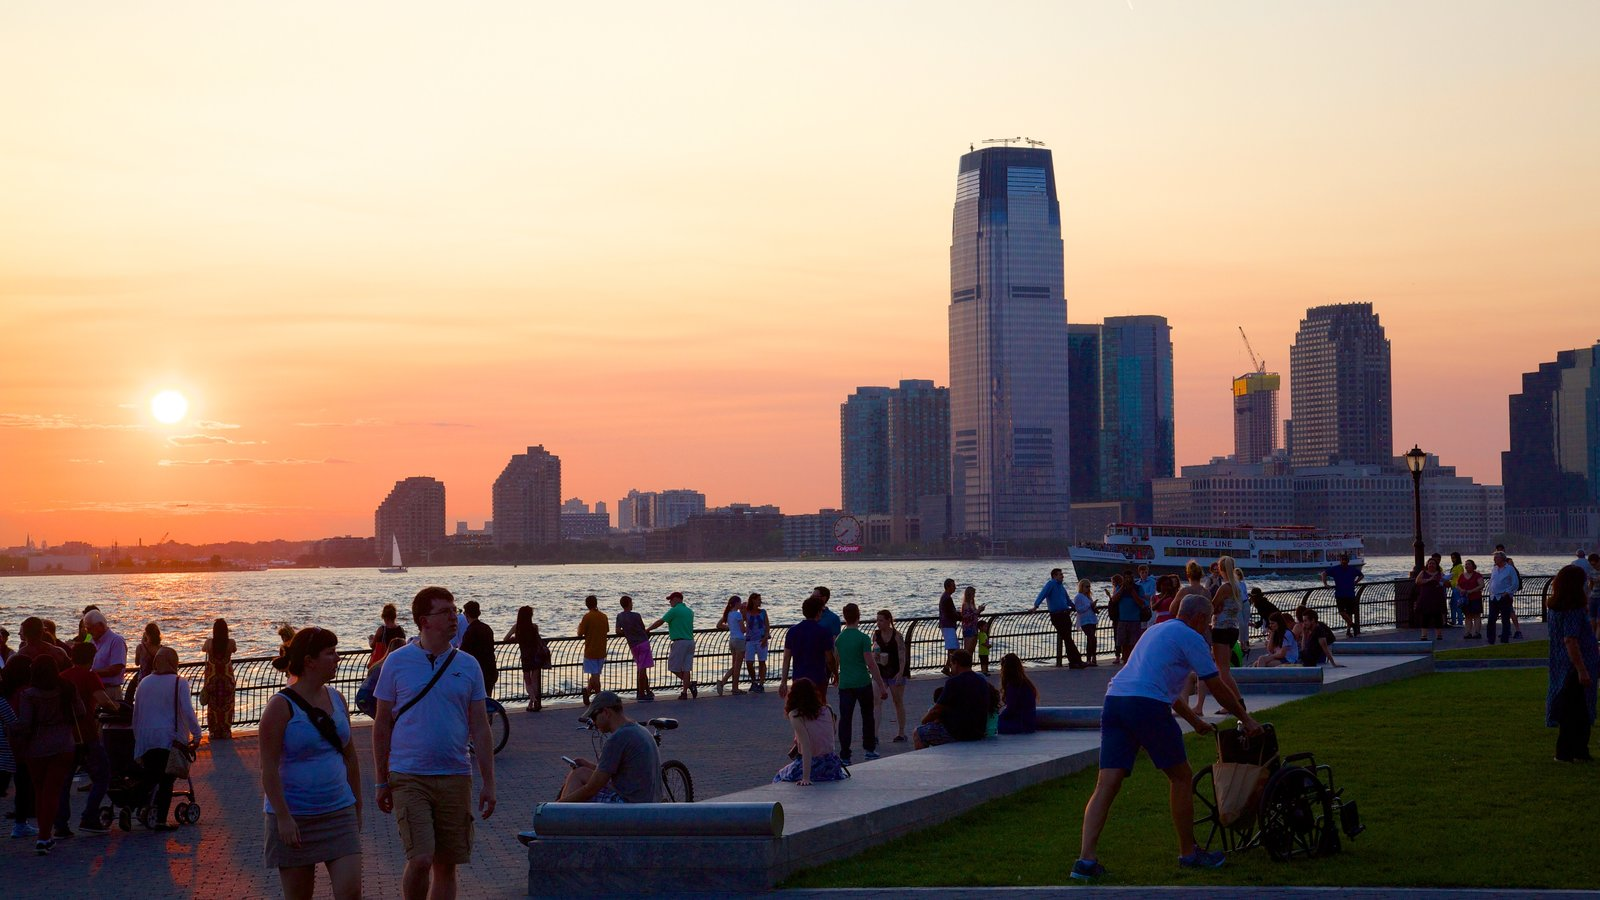 meet battery park singles Hudson river park is a 550-acre riverside park and estuarine sanctuary located on the west side of manhattan between battery place and w59th street.